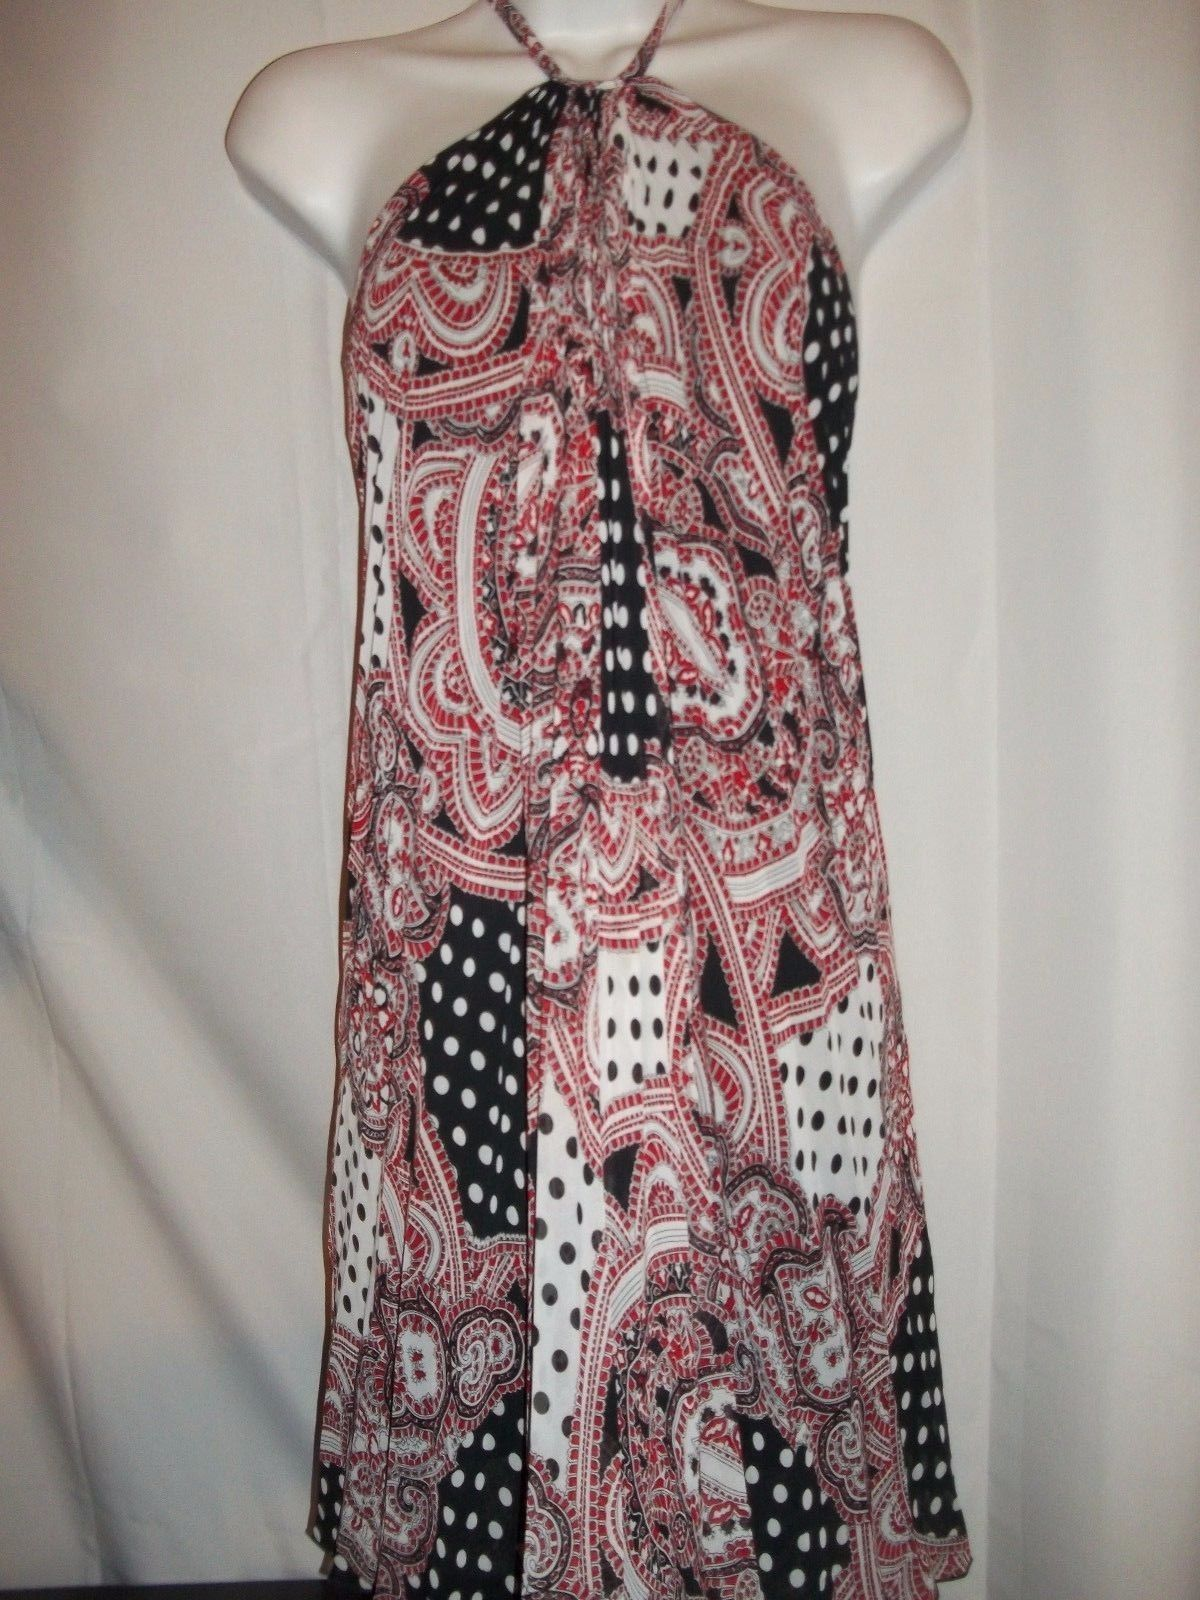 Ladies Size XS Frederick's Sexy Halter Dress In Black red And White polka dot  - $24.74